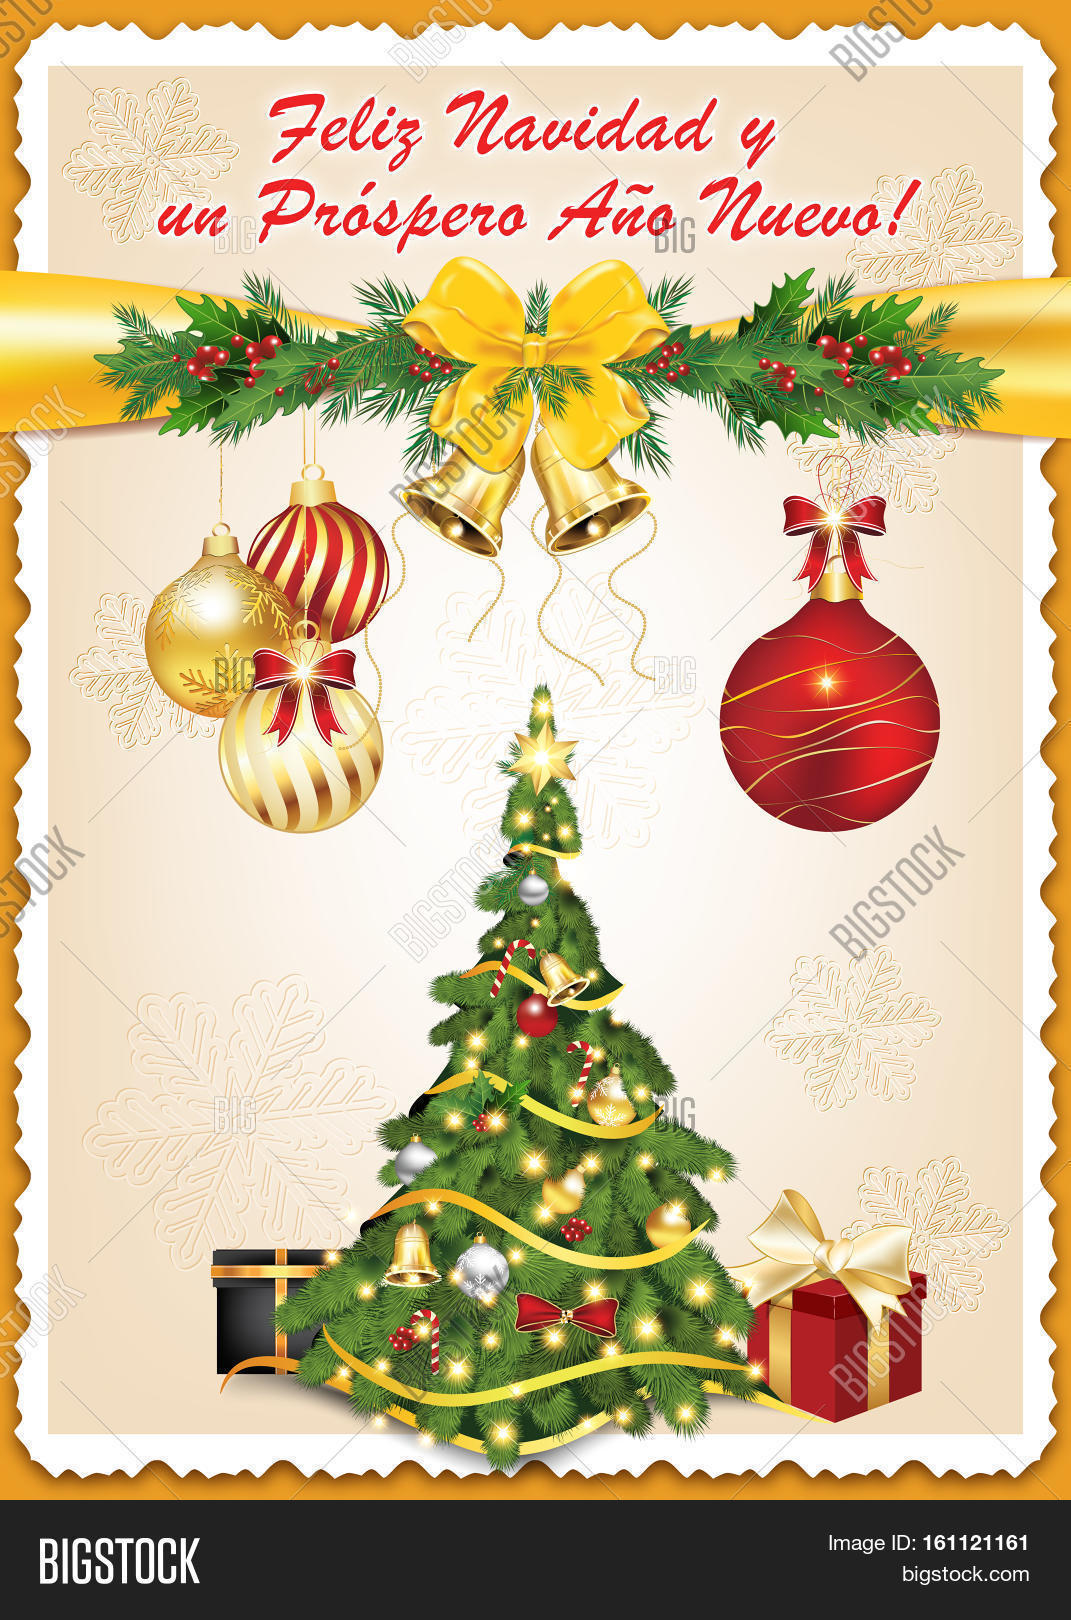 spanish seasons greetings christmas new year card feliz navidad y prospero feliz ano